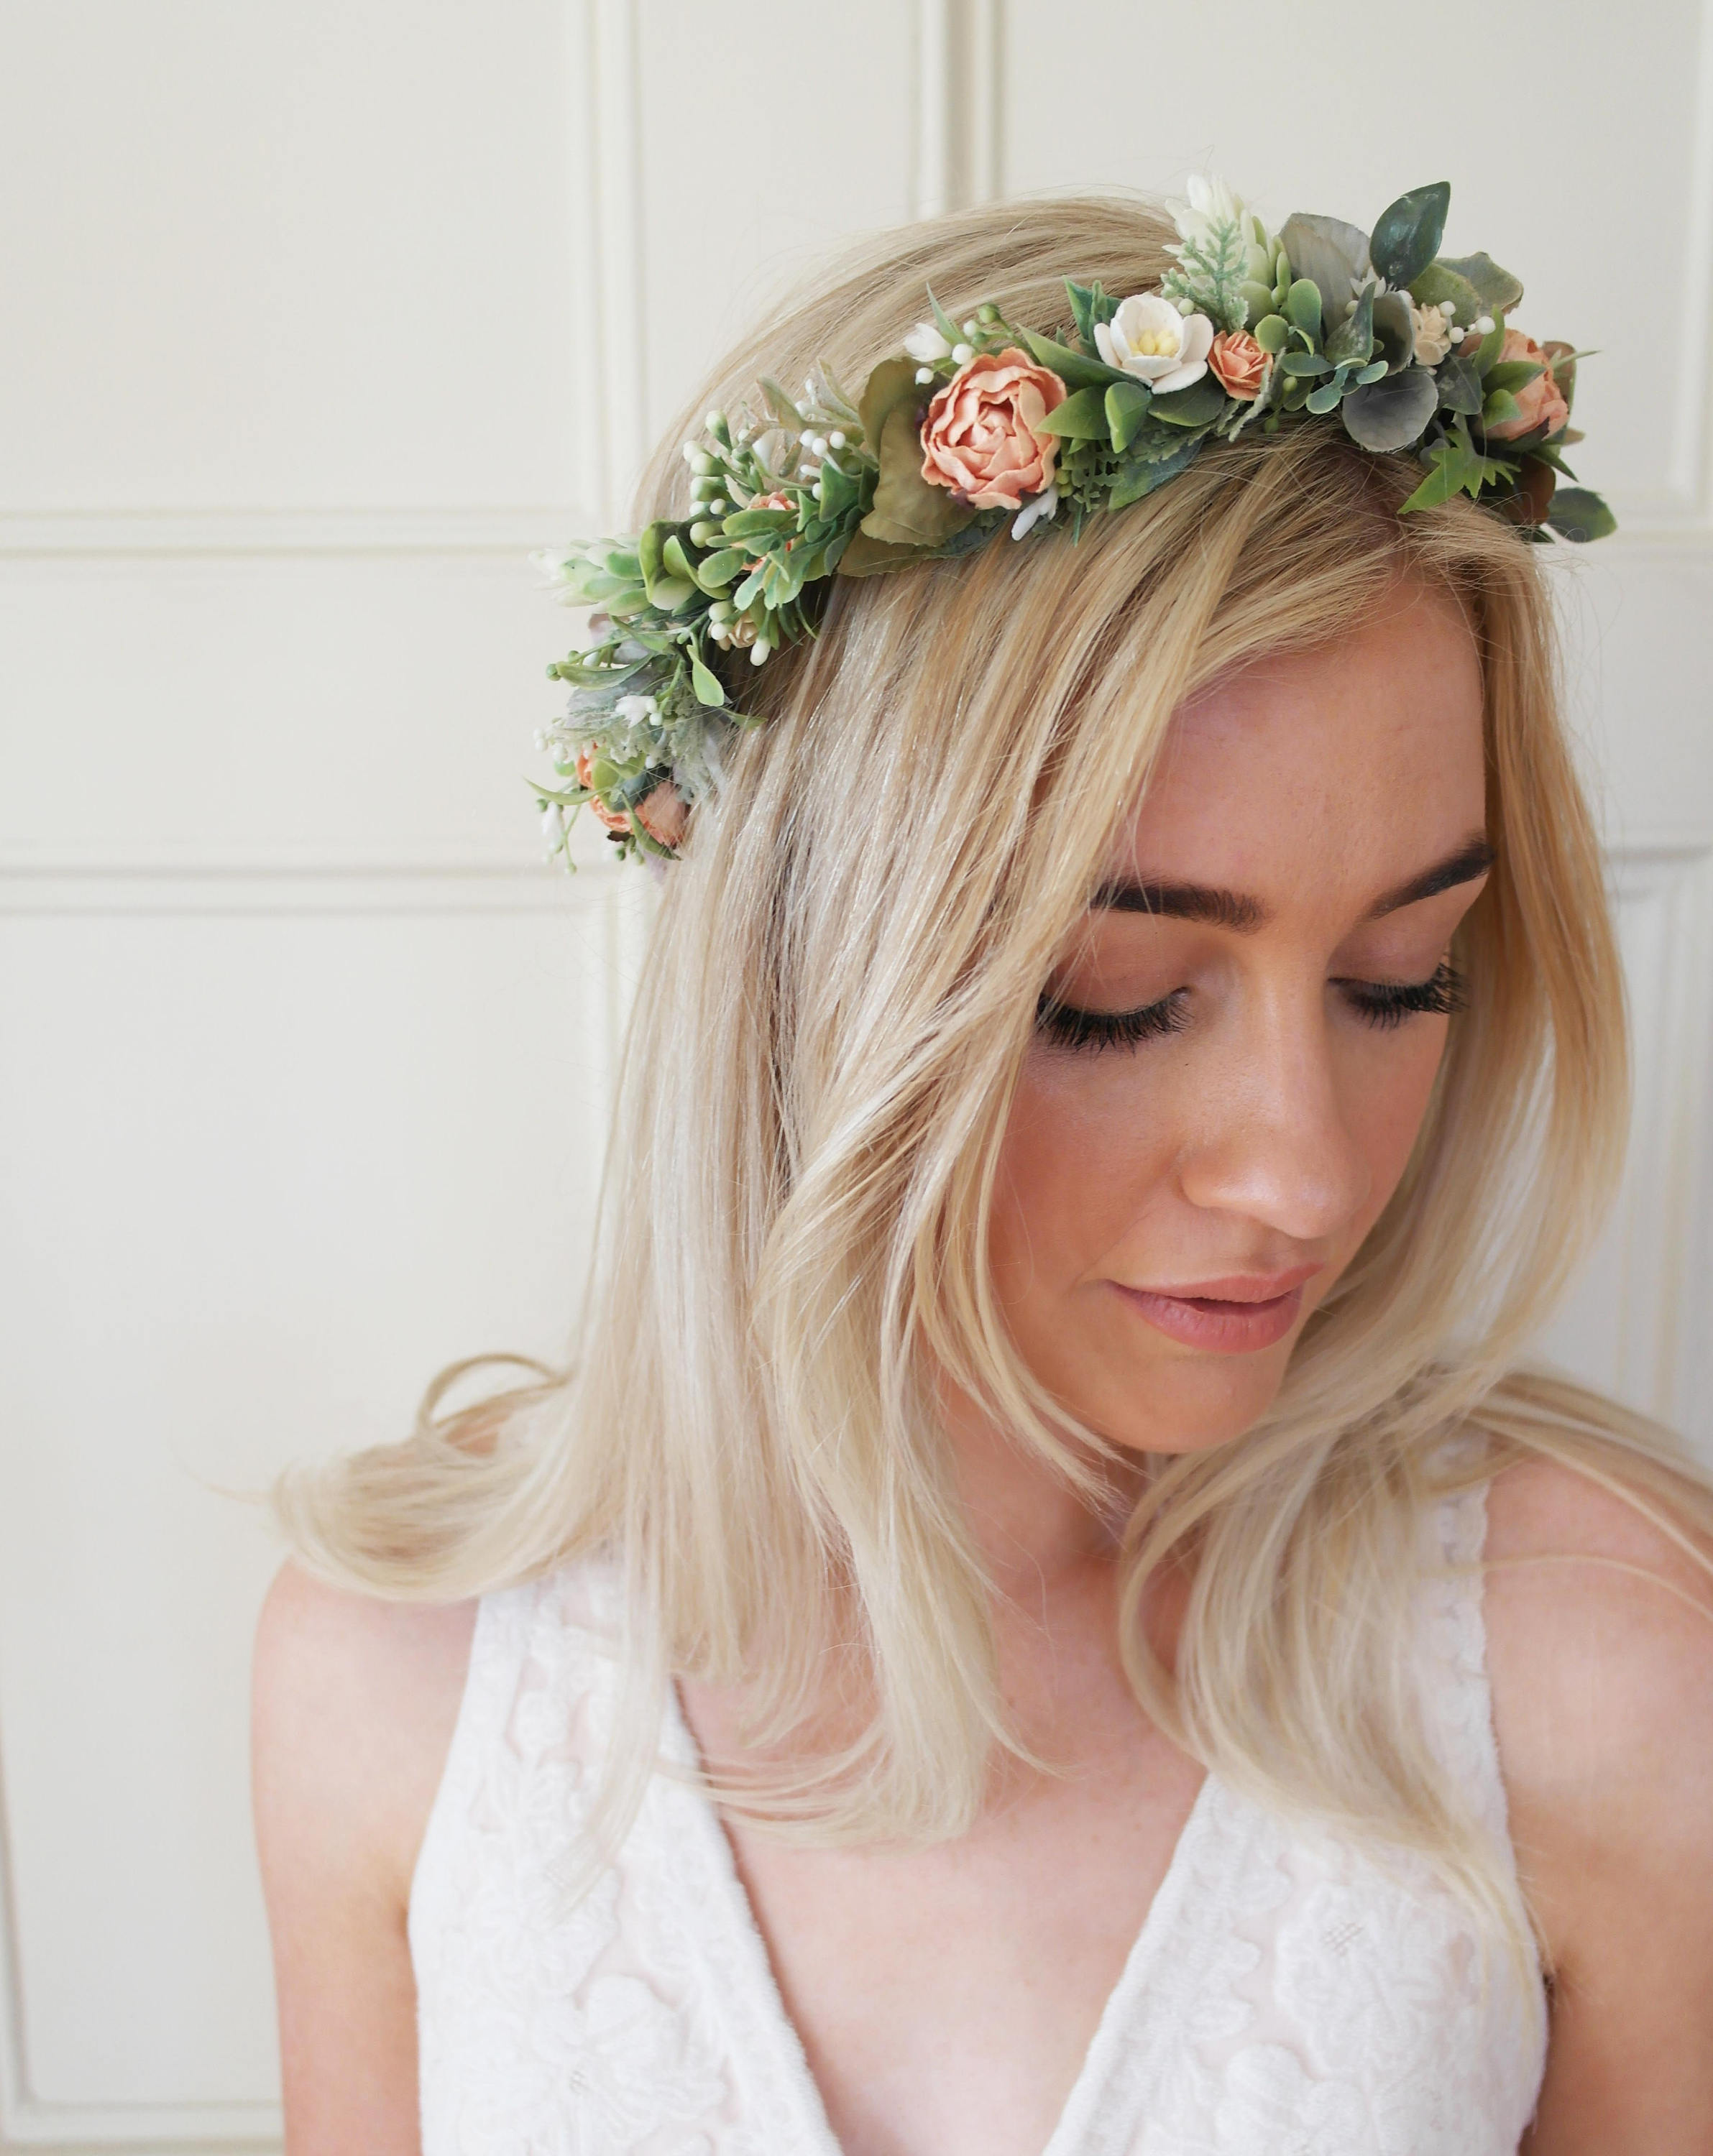 Coral flower crown, Boho wedding, bohemian bridal hairstyle.jpg